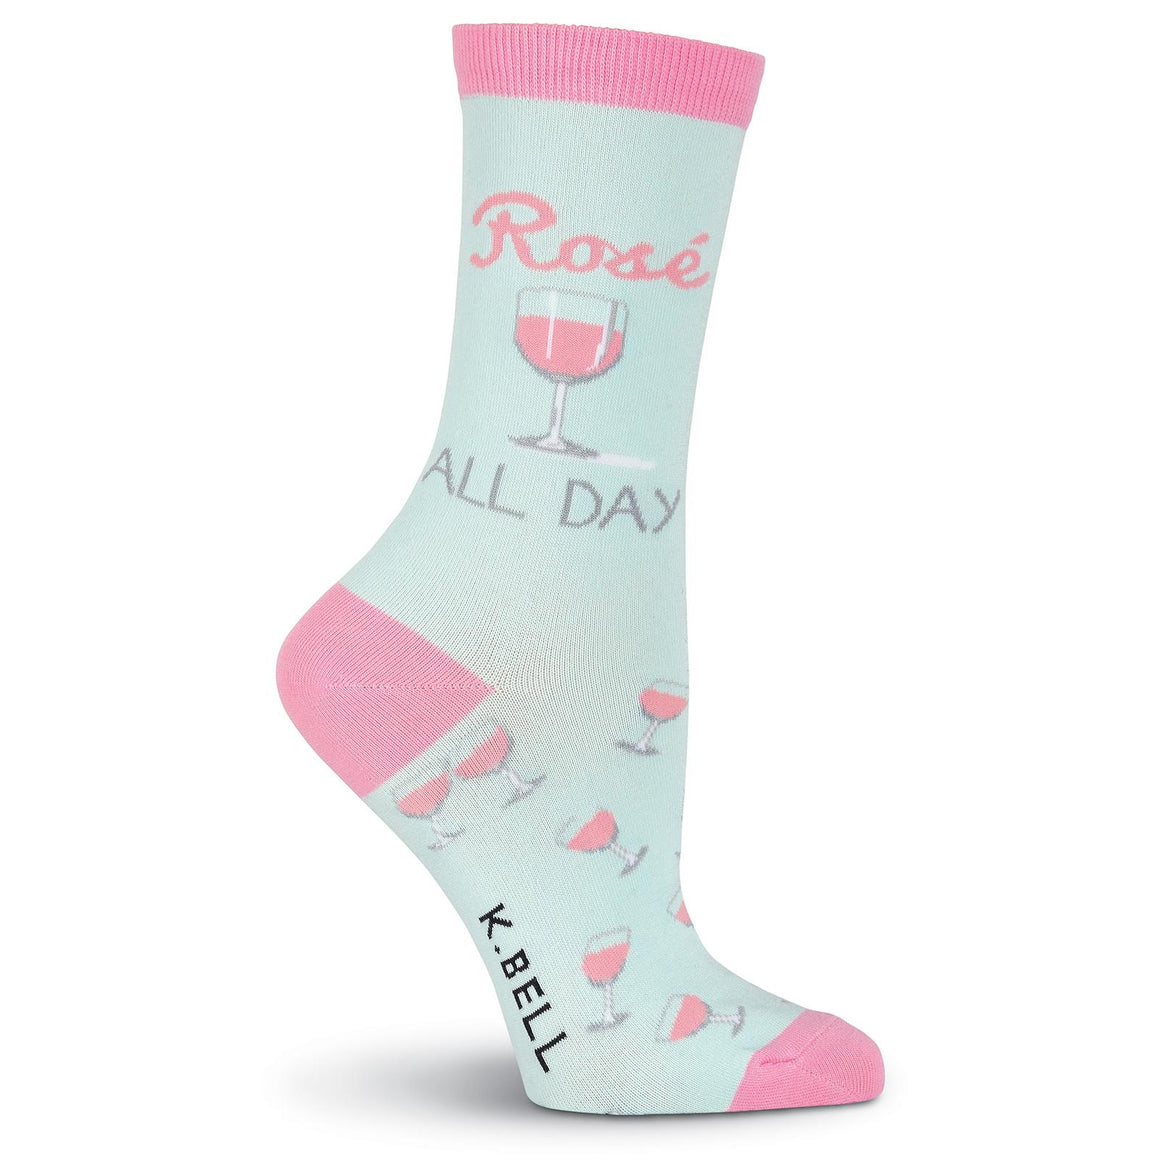 Rosé All Day Crew Socks - XEJRA